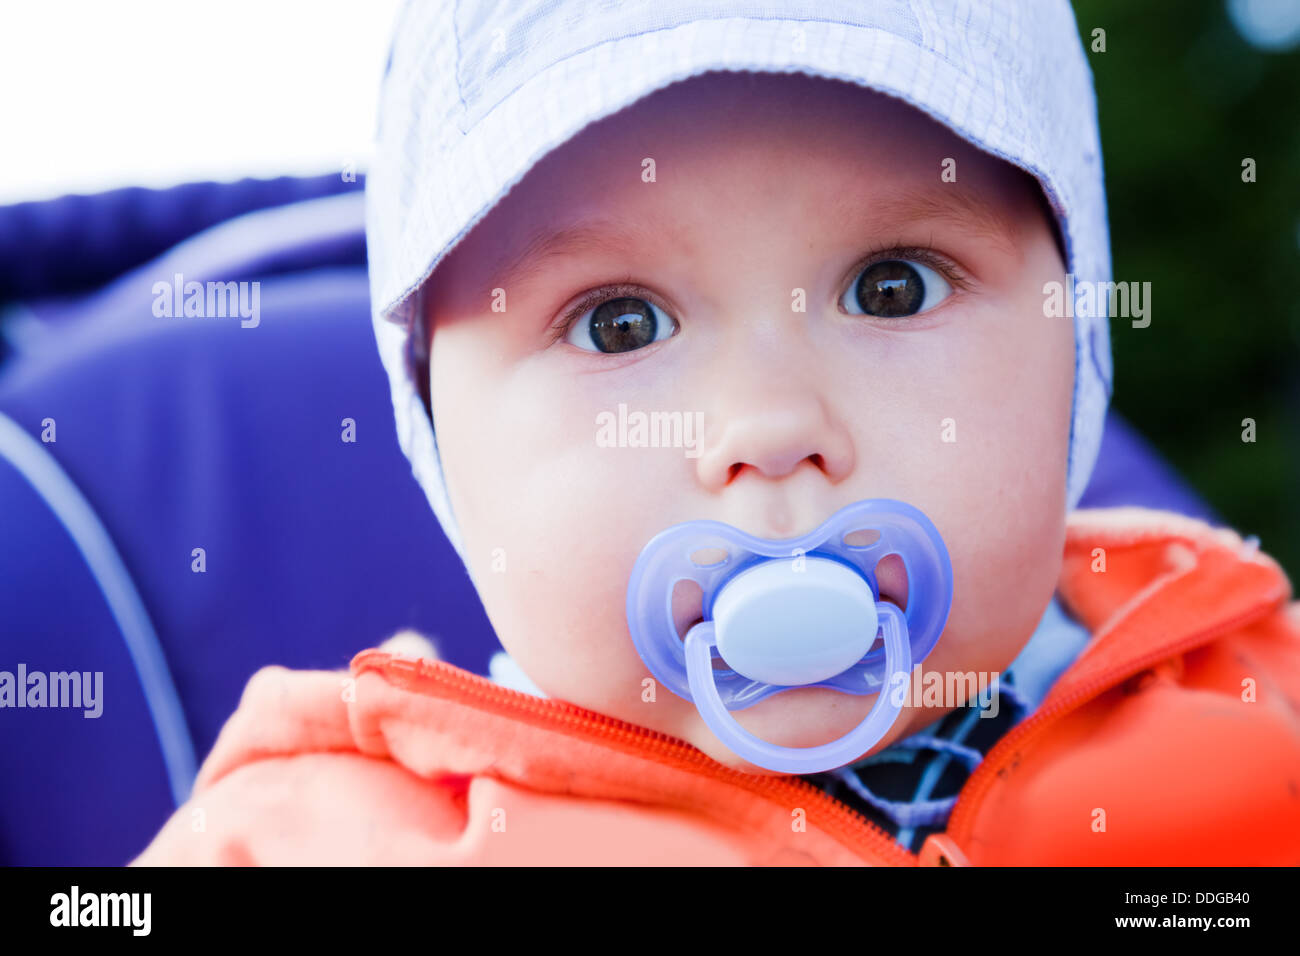 Young baby boy with a dummy in his mouth outside in his push chair - Stock Image